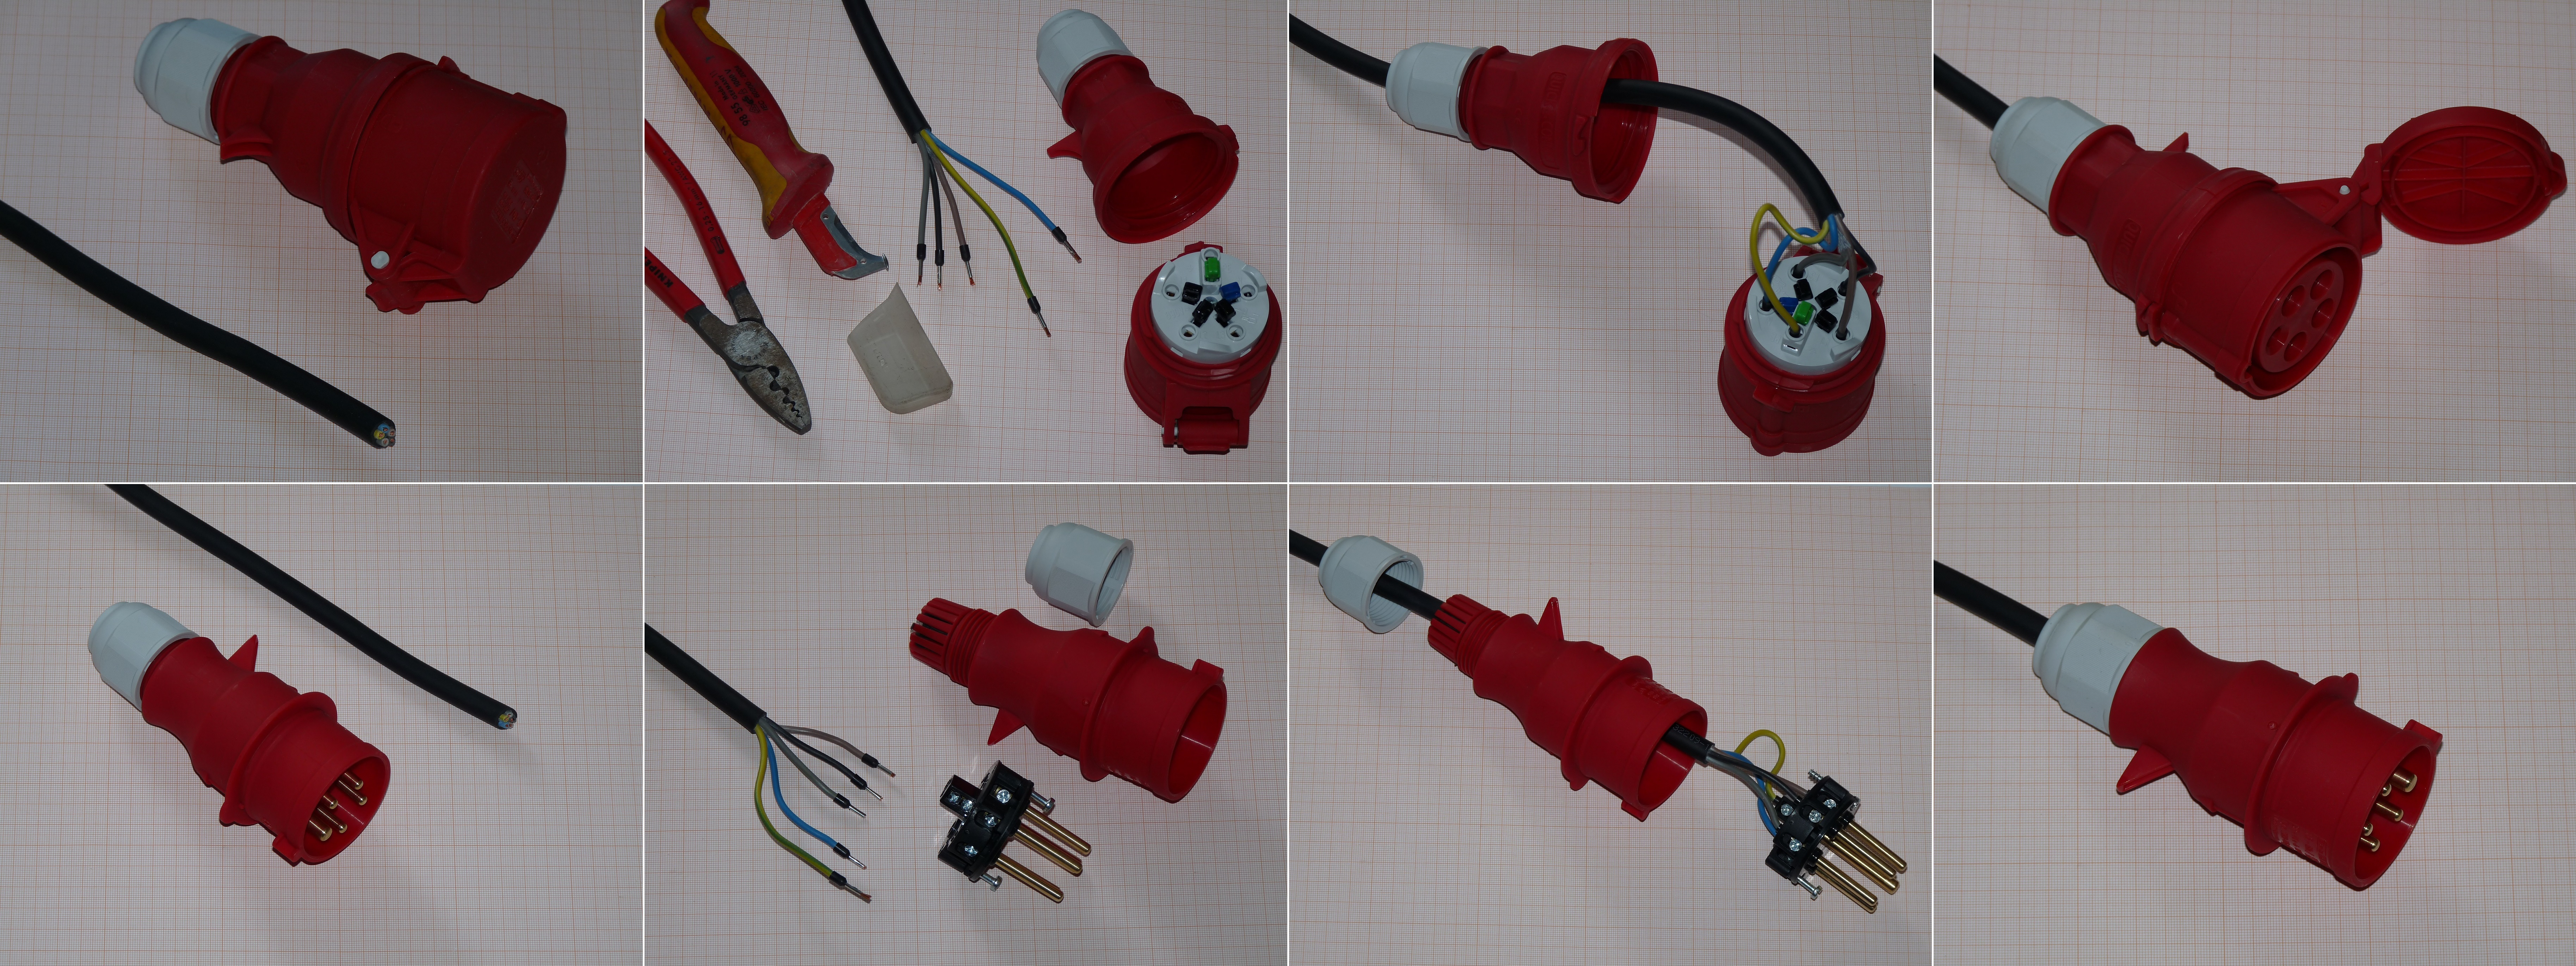 File:How to wire 3-phase extension cord.JPG - Wikimedia Commons on